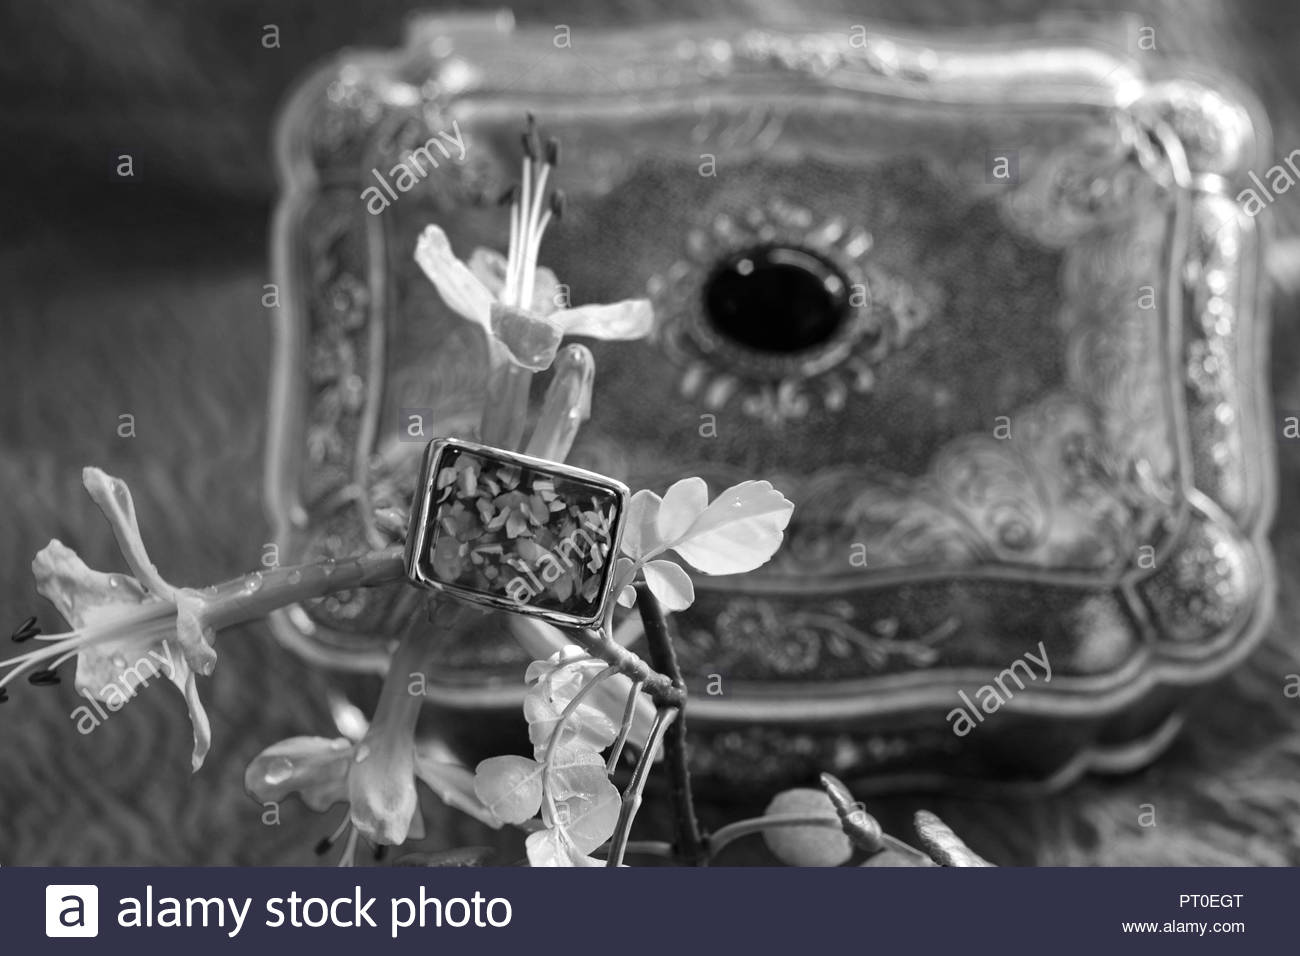 ARTISTIC COMPOSITION OF WOMEN'S JEWELLERY AND STYLE, ATHENS, GREECE - Stock Image